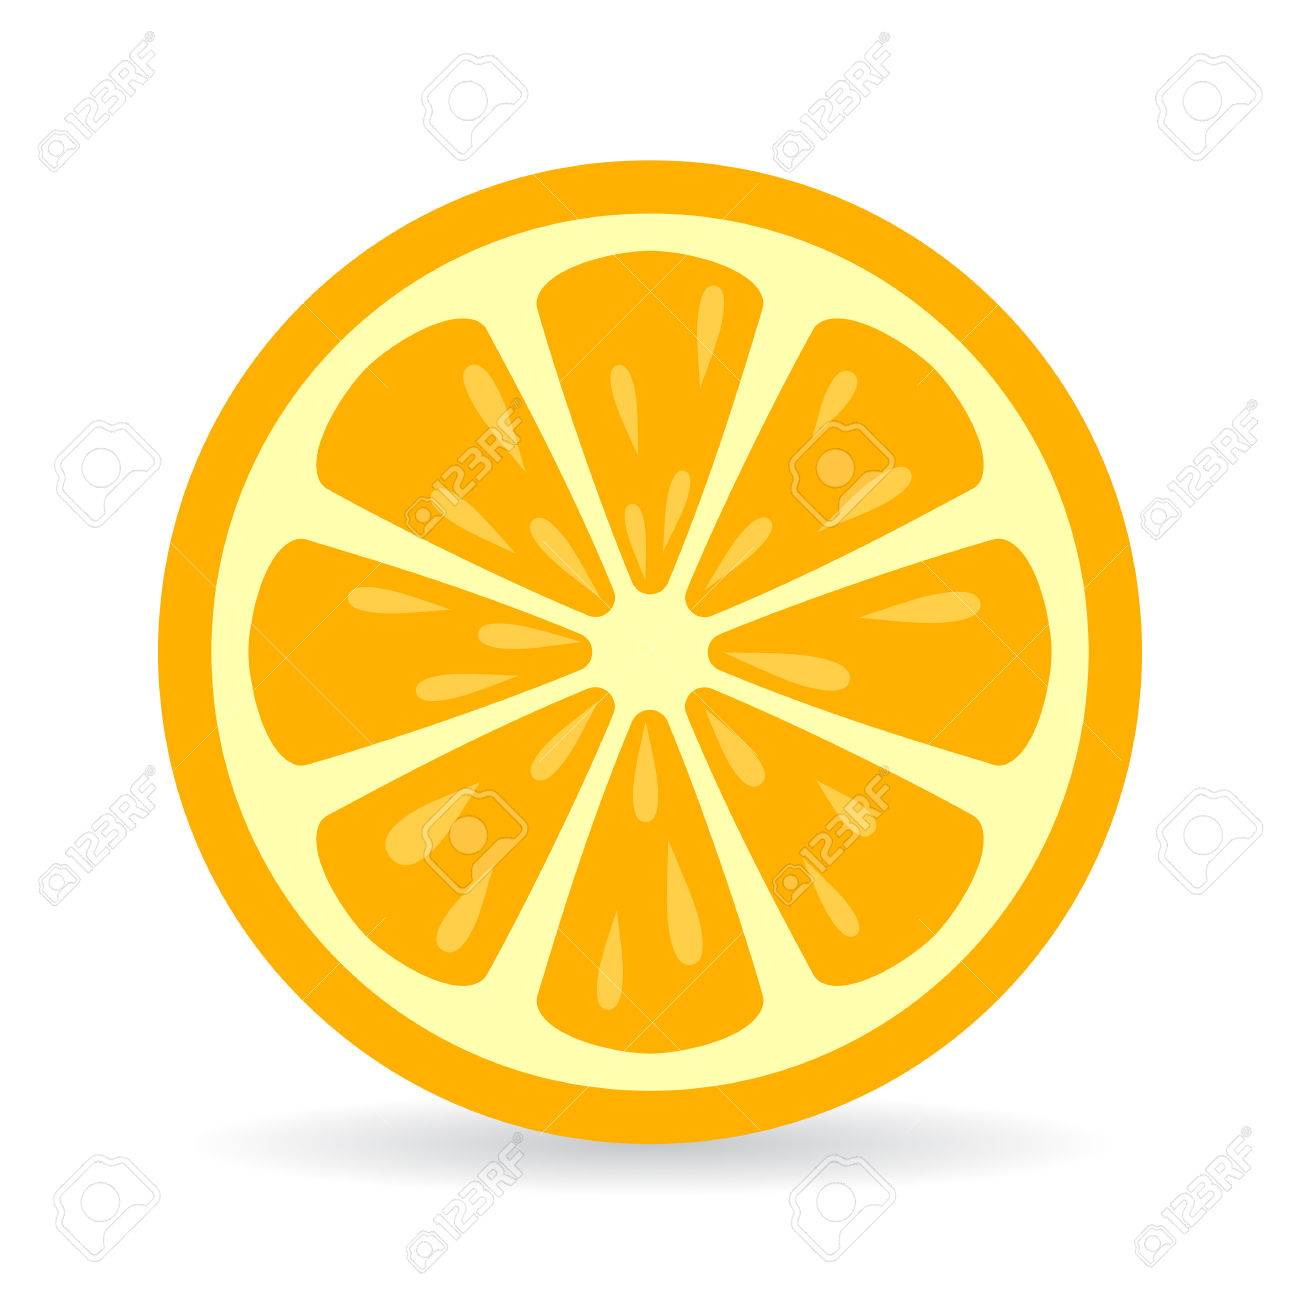 orange slice vector icon royalty free cliparts vectors and stock rh 123rf com orange vector background hd background vector orange